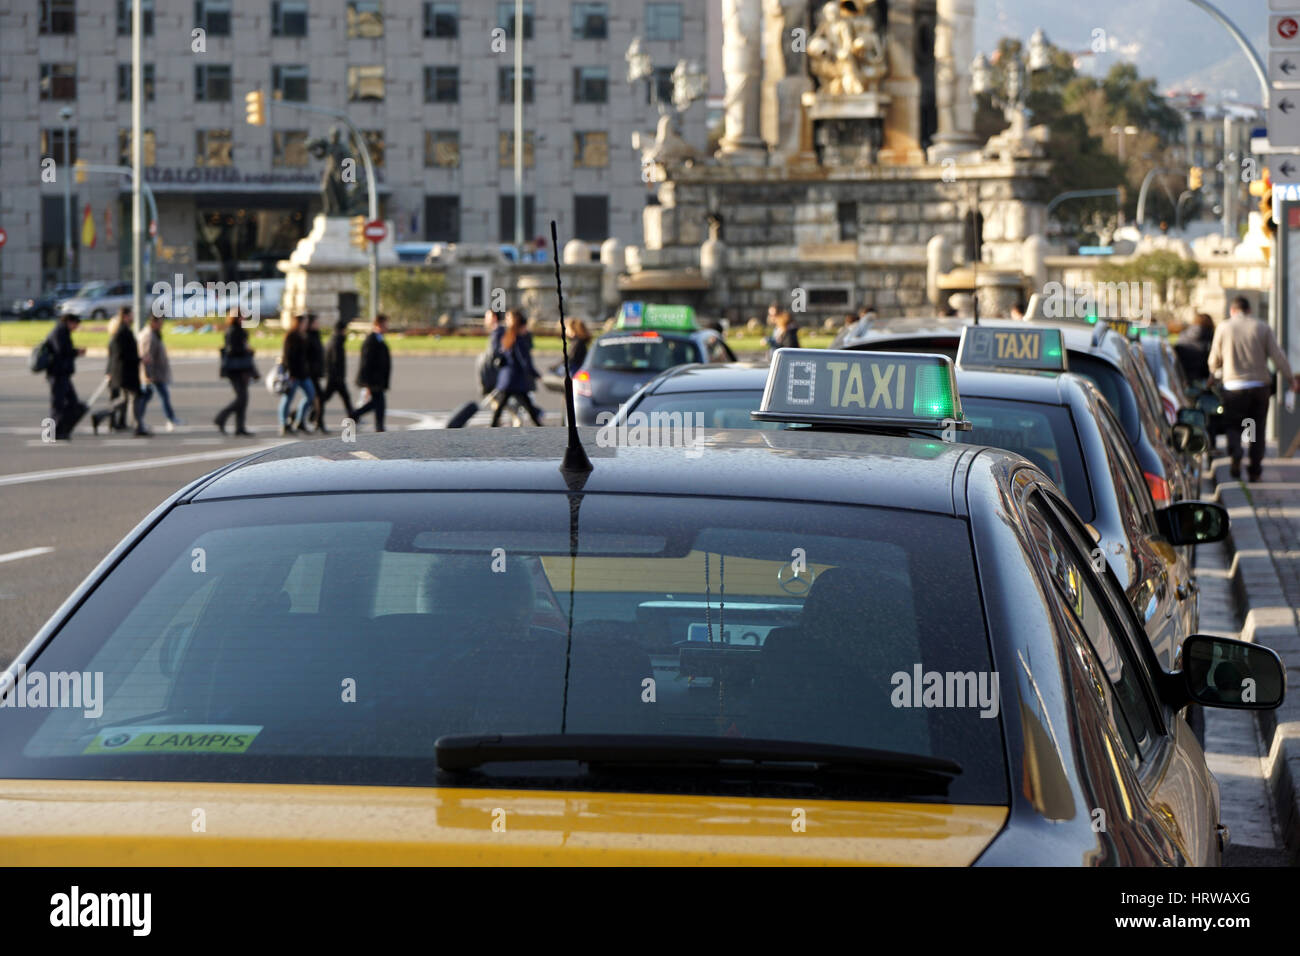 Barcelona, Spain - Feb 29, 2016: Row of taxi cabs waiting for passengers at Placa d'Espagna. - Stock Image